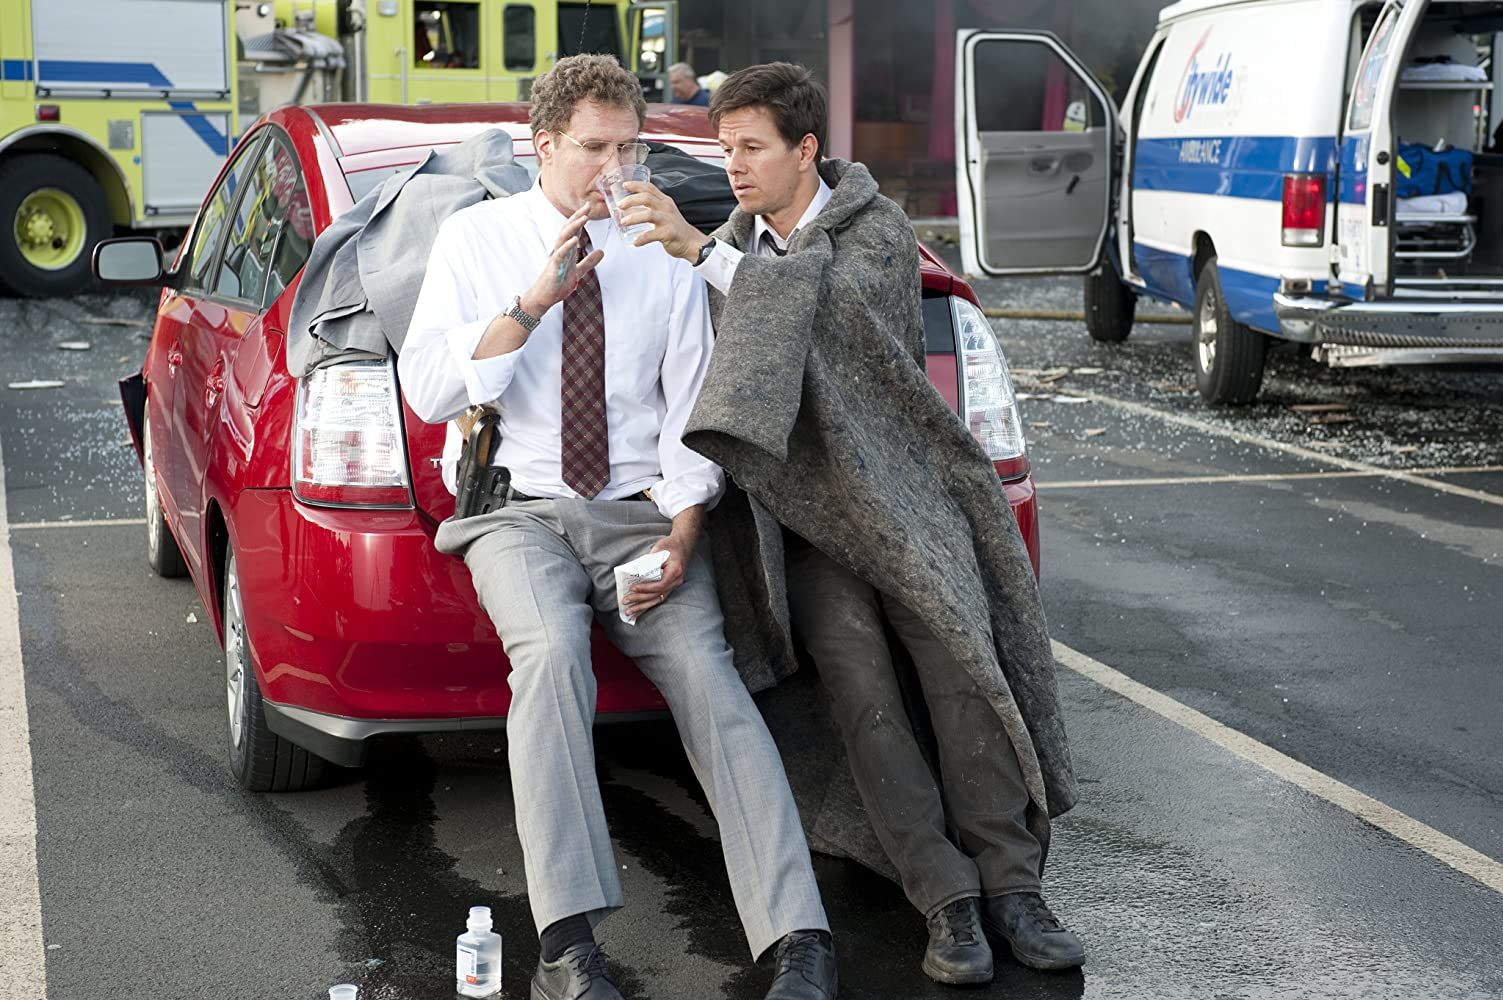 Mark Wahlberg and Will Ferrell in The Other Guys (2010)